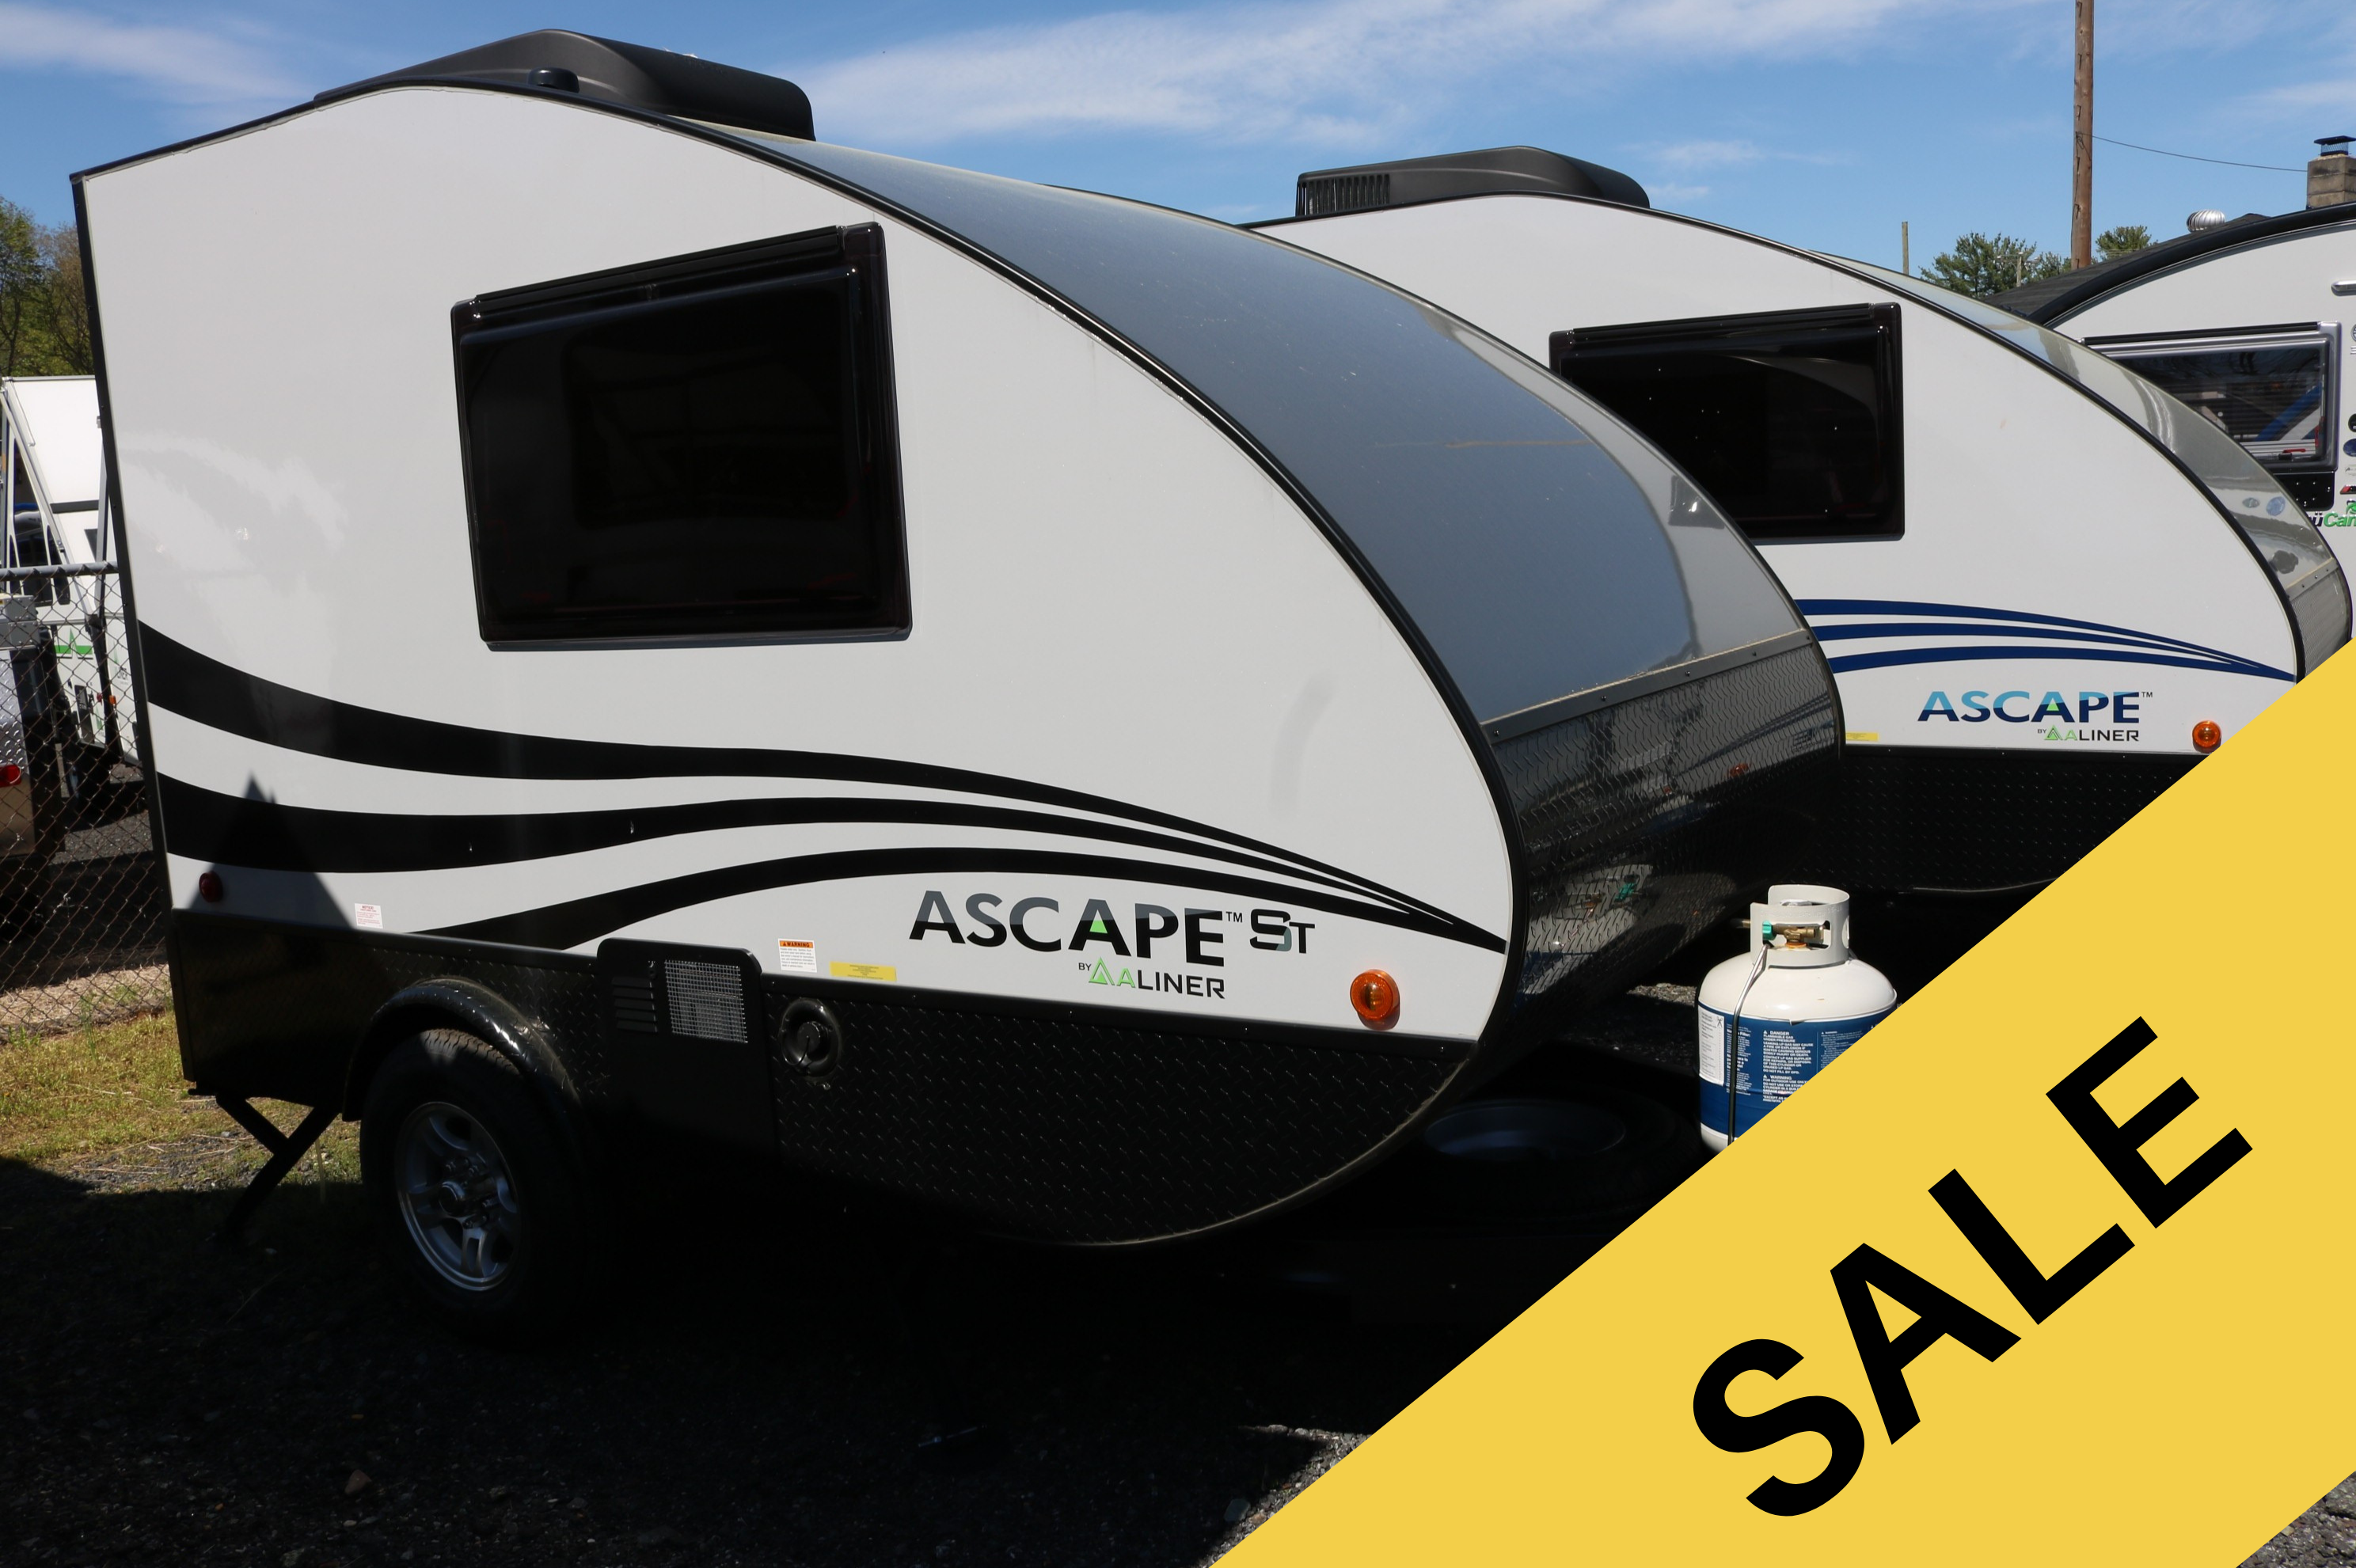 Road Trip Camping | Small Camper Sales in Orange, VA